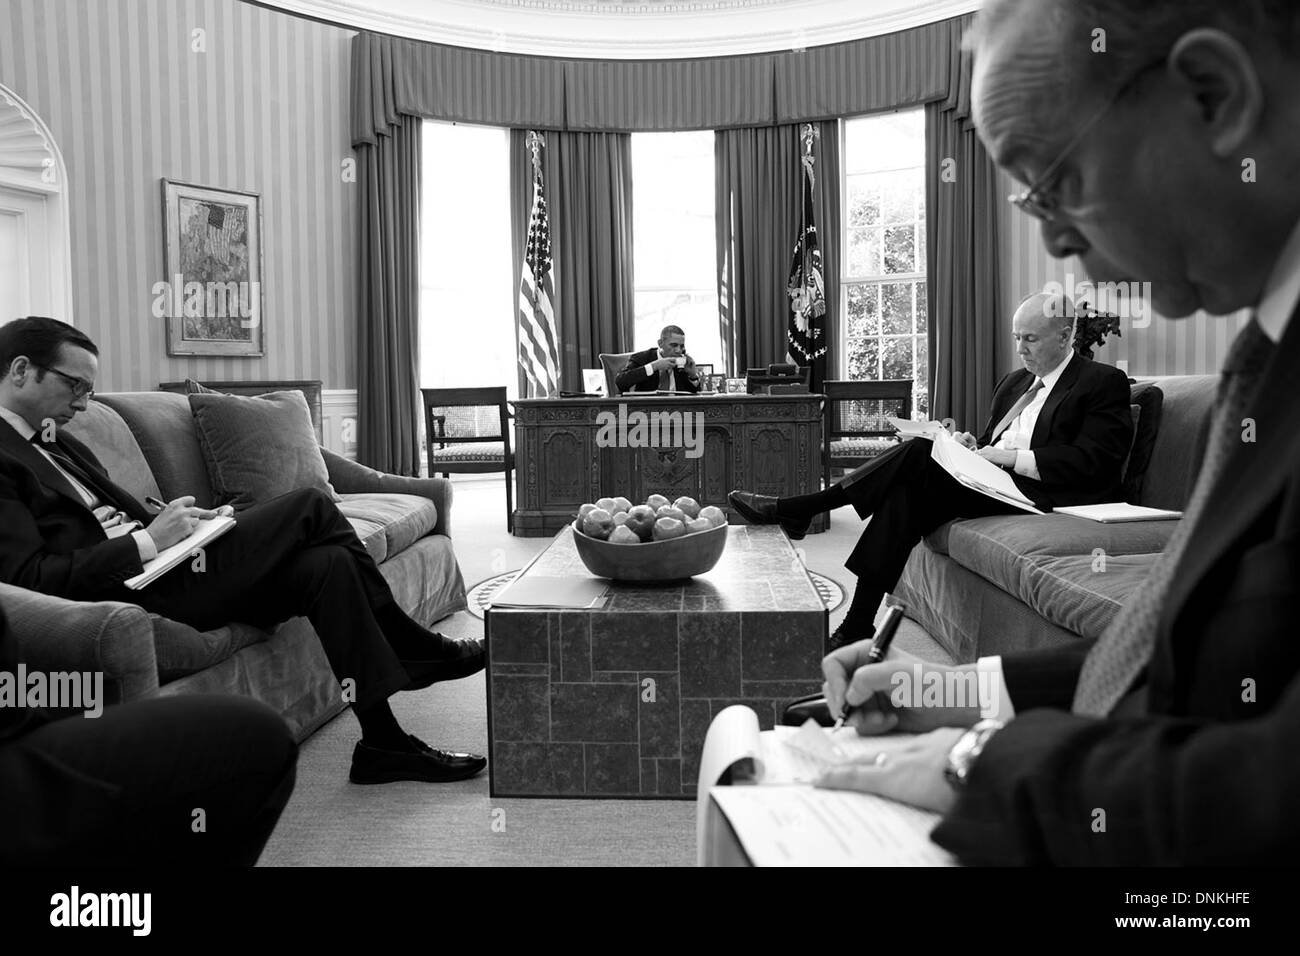 US President Barack Obama sips a cup of tea while talking on the phone with Chinese President Xi Jinping in the Oval Office of the White House March 14, 2013 in Washington, DC. - Stock Image